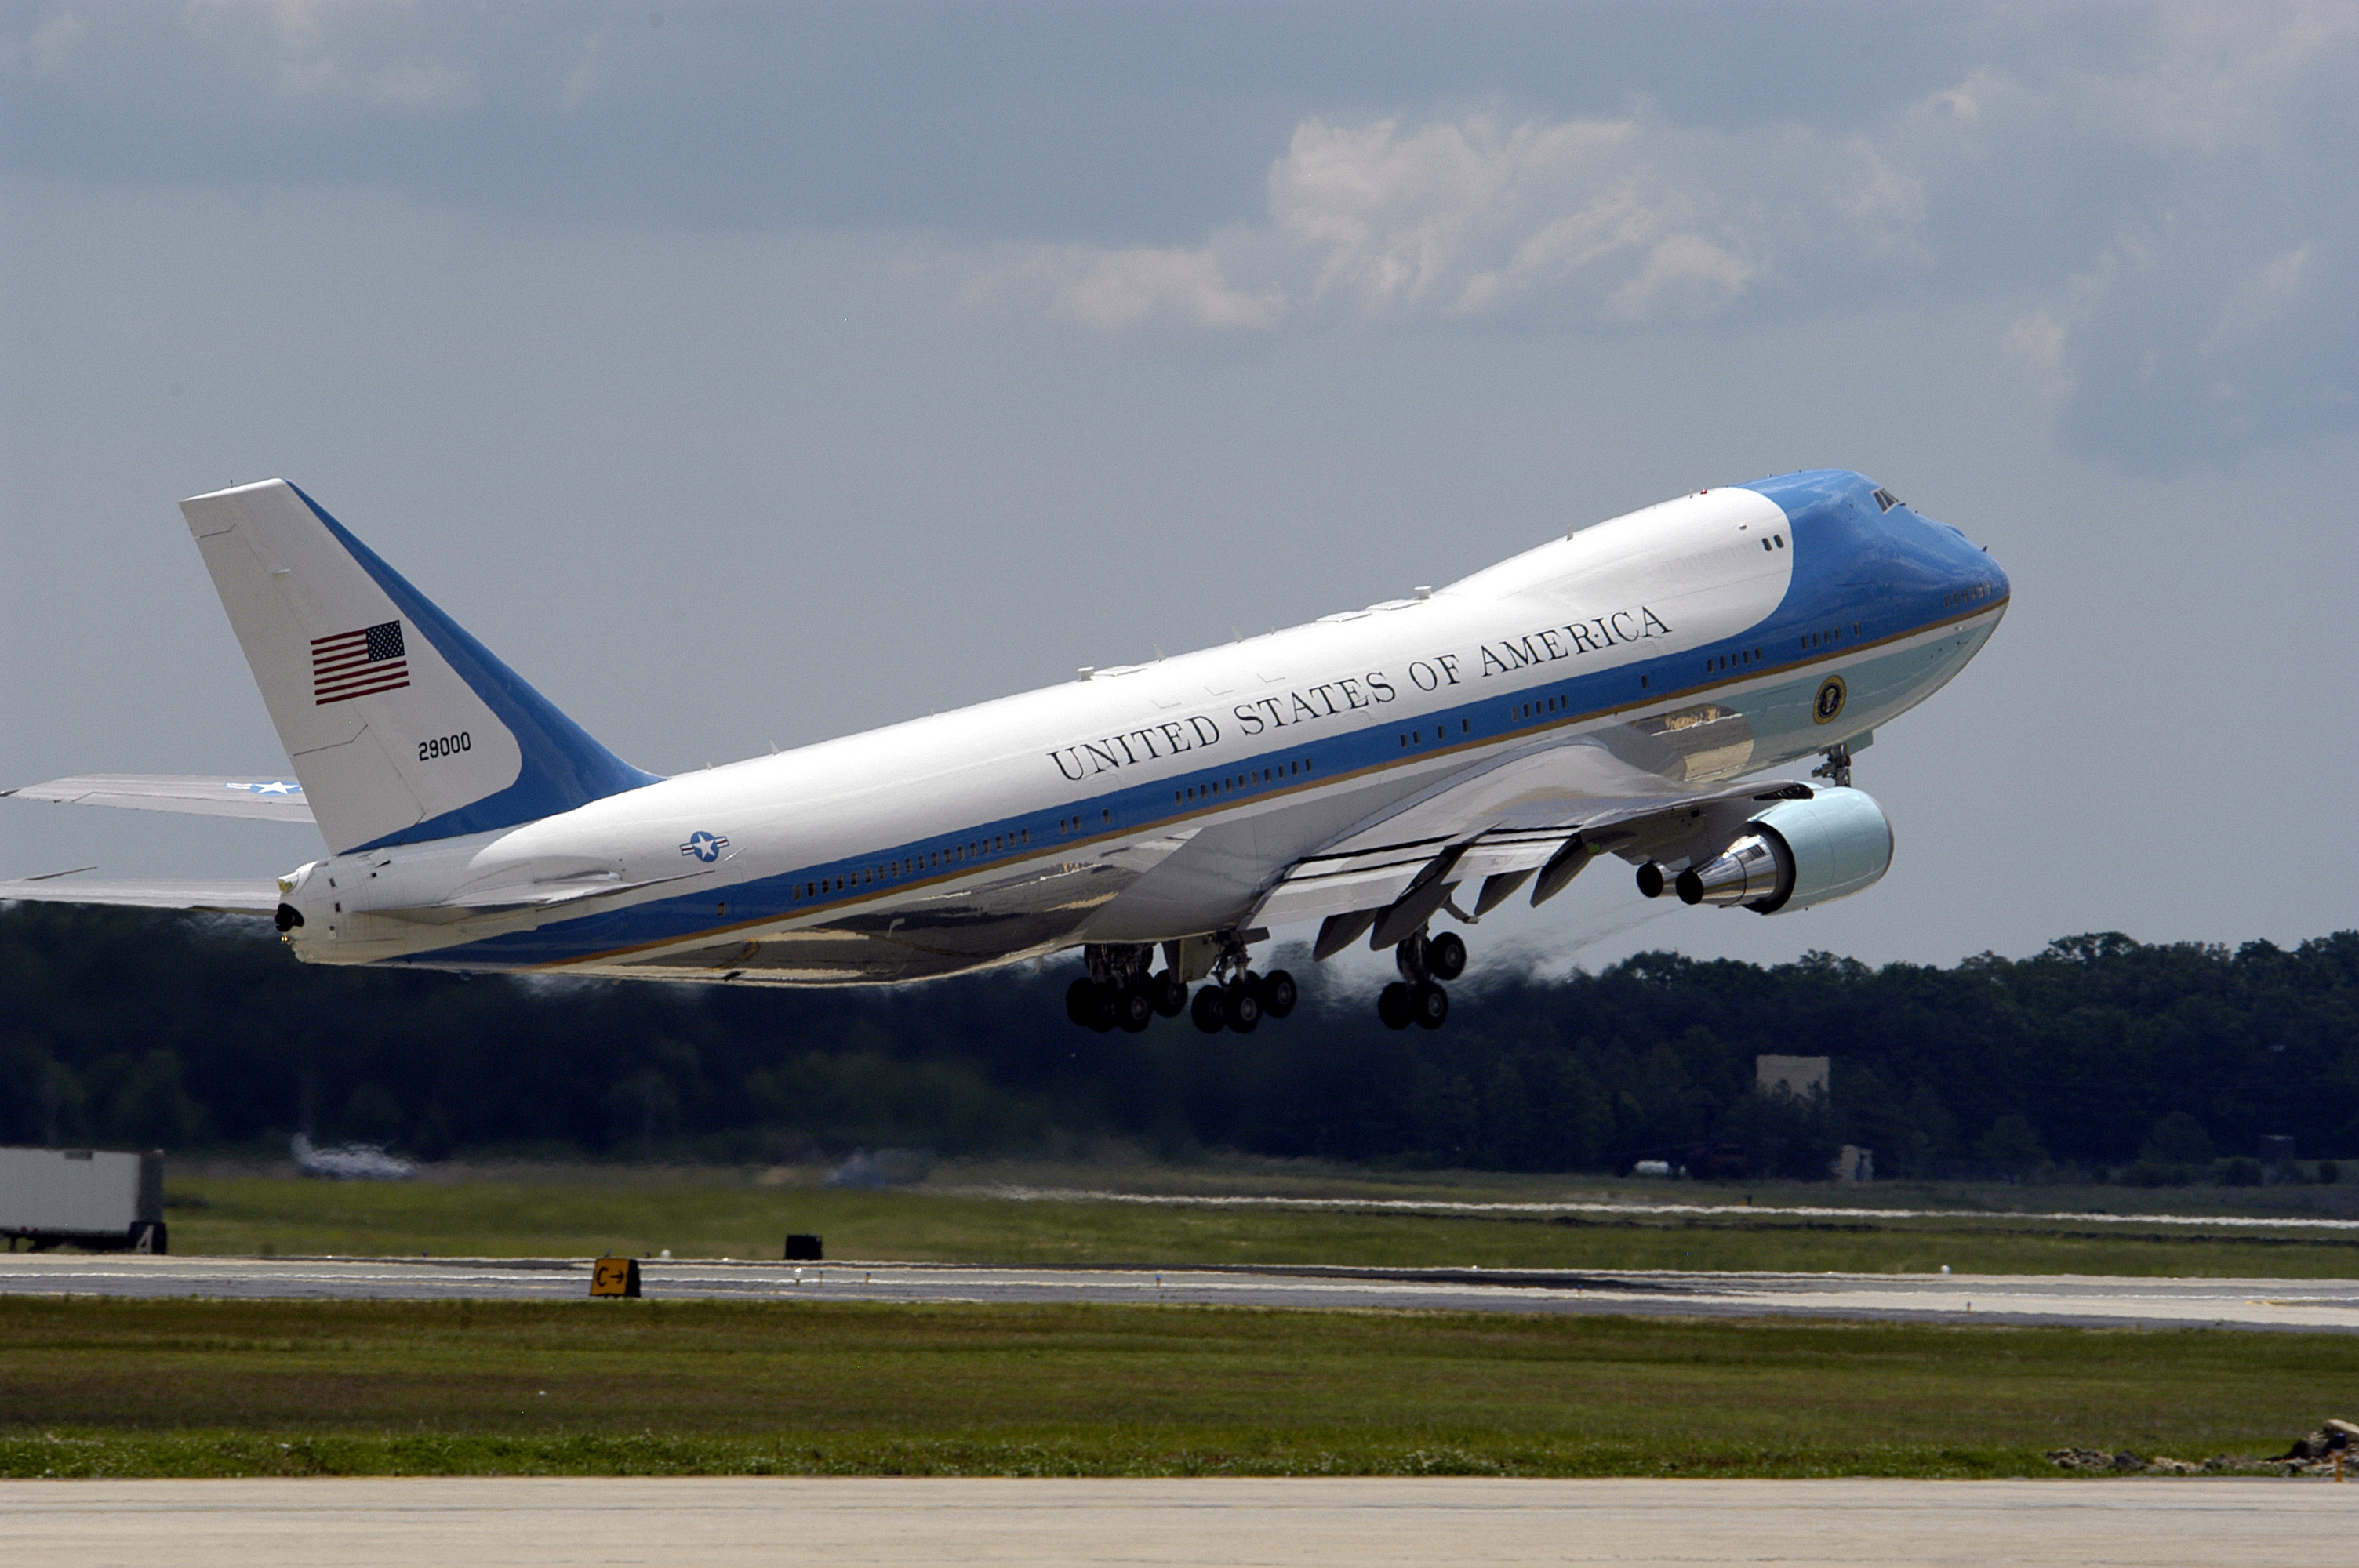 CR4 - Blog Entry: Air Force One Upgrade